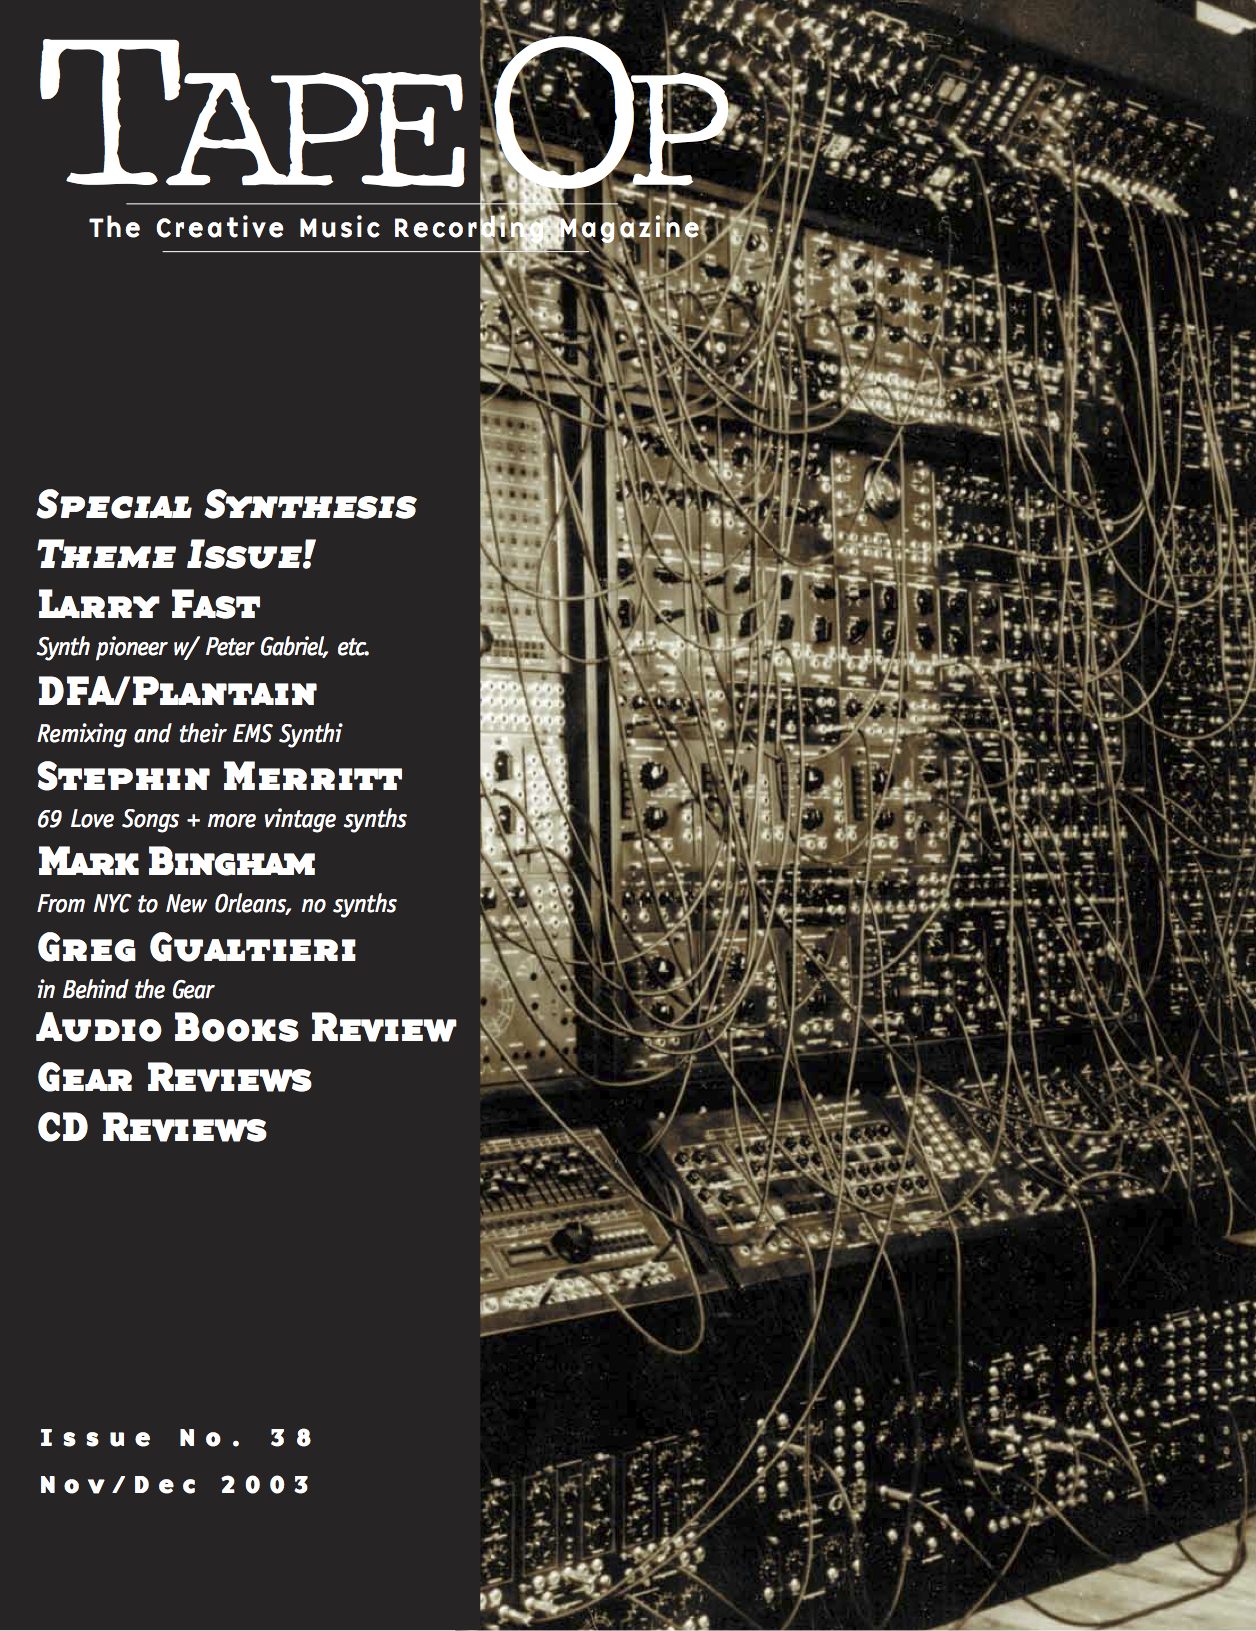 Issue No. 38